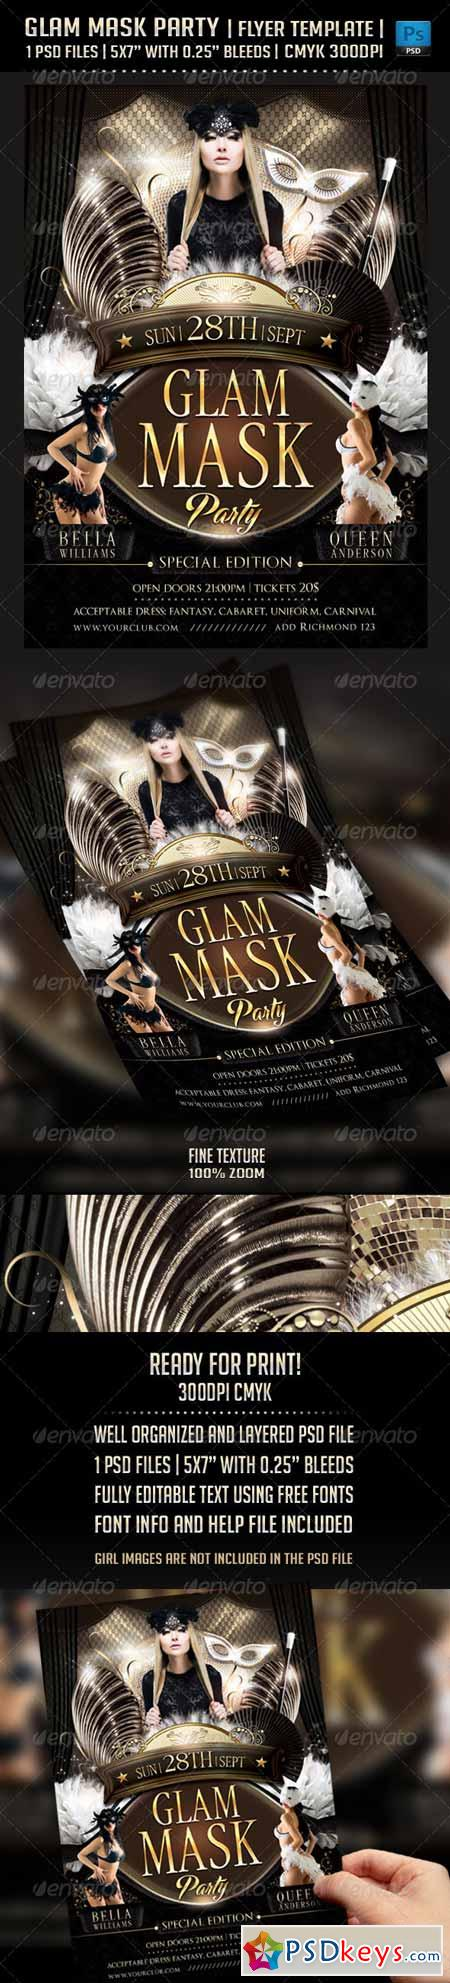 Glam Mask Party Flyer Template 5594815